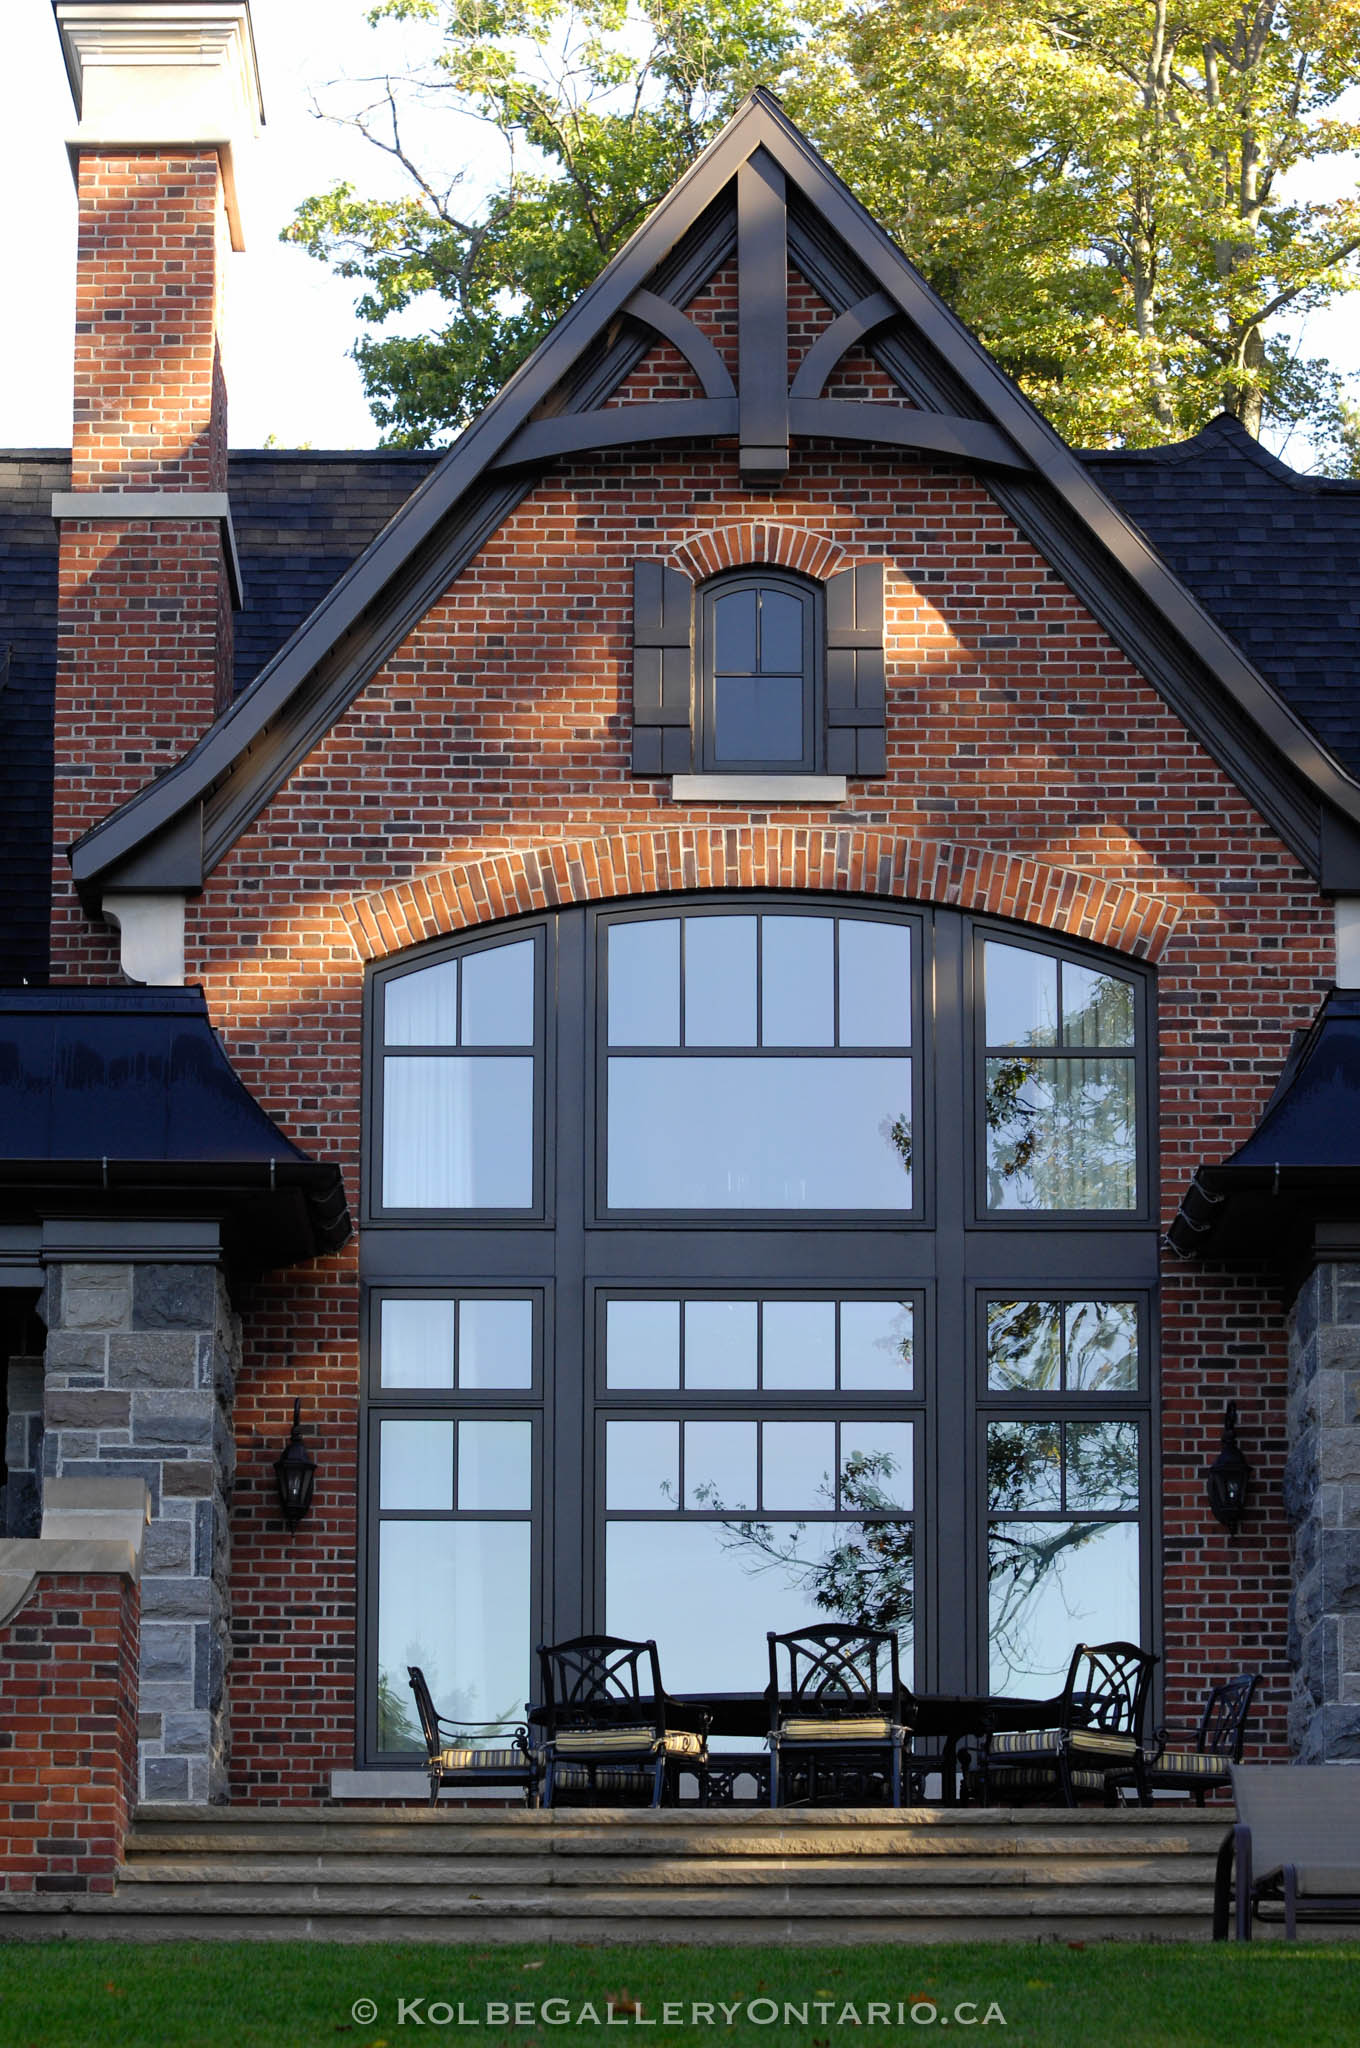 KolbeGalleryOntario.ca-windows-and-doors---20141009-090406